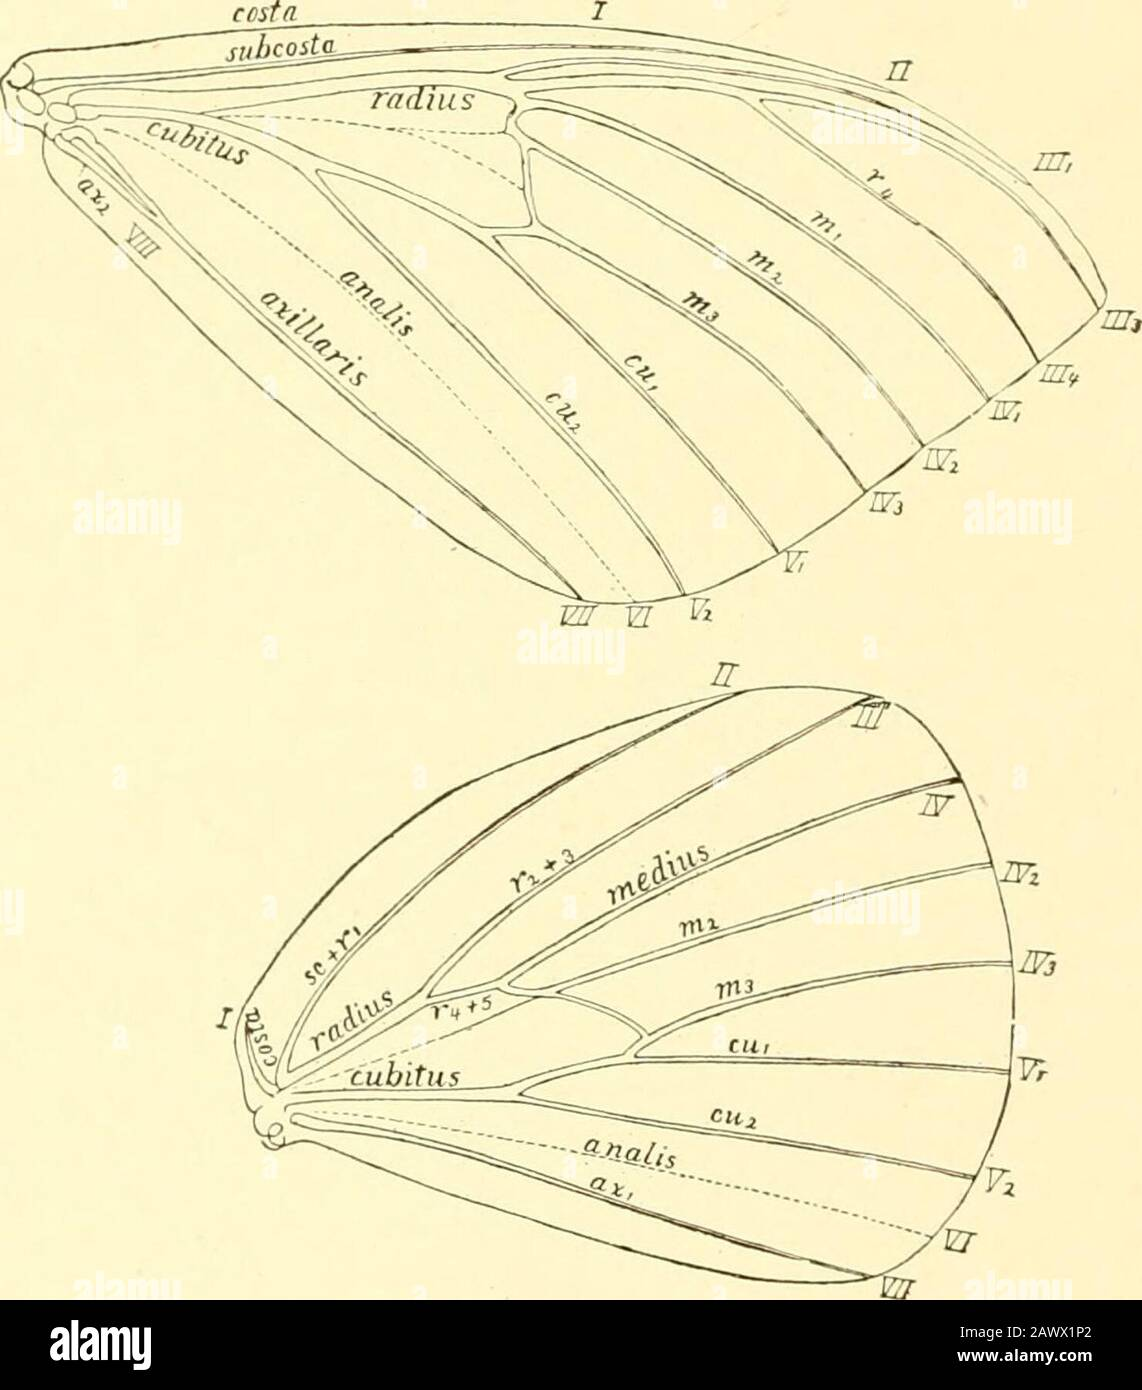 Monograph of the bombycine moths of North America, including their transformations and origin of the larval markings and armature . - lepidopterists.. Fip. h. NonK^iioliittirc jinil iiiiinlnTinff of tlif veins of the f. 280. Dec, 1901. 7un/)t7i/ Character)!.—Head small, but largeithan in the Saturniidw, not prominent; in Adelo-cephala, netirly concealed from al)ove by the overhanging thorax. Front of the head eitherdistinctly triangular in the most typical forms (Adelocephala, Sv.s.sphinx, Eacles) or very narrow(Arseiuira). or moderately wide, with a vestiture either closely cropped, or shagg Stock Photo